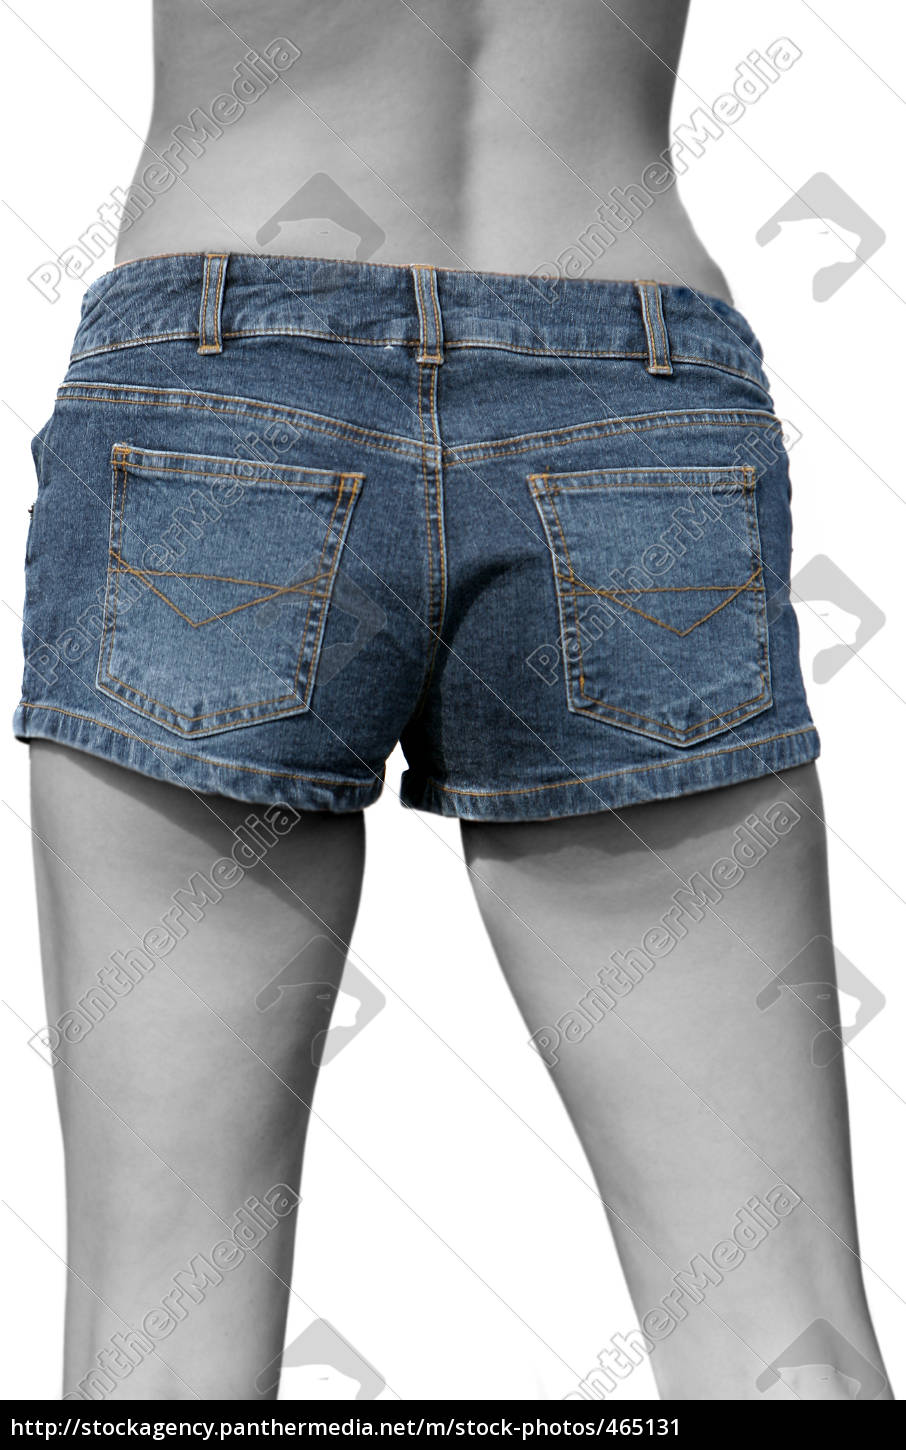 jeans - 465131